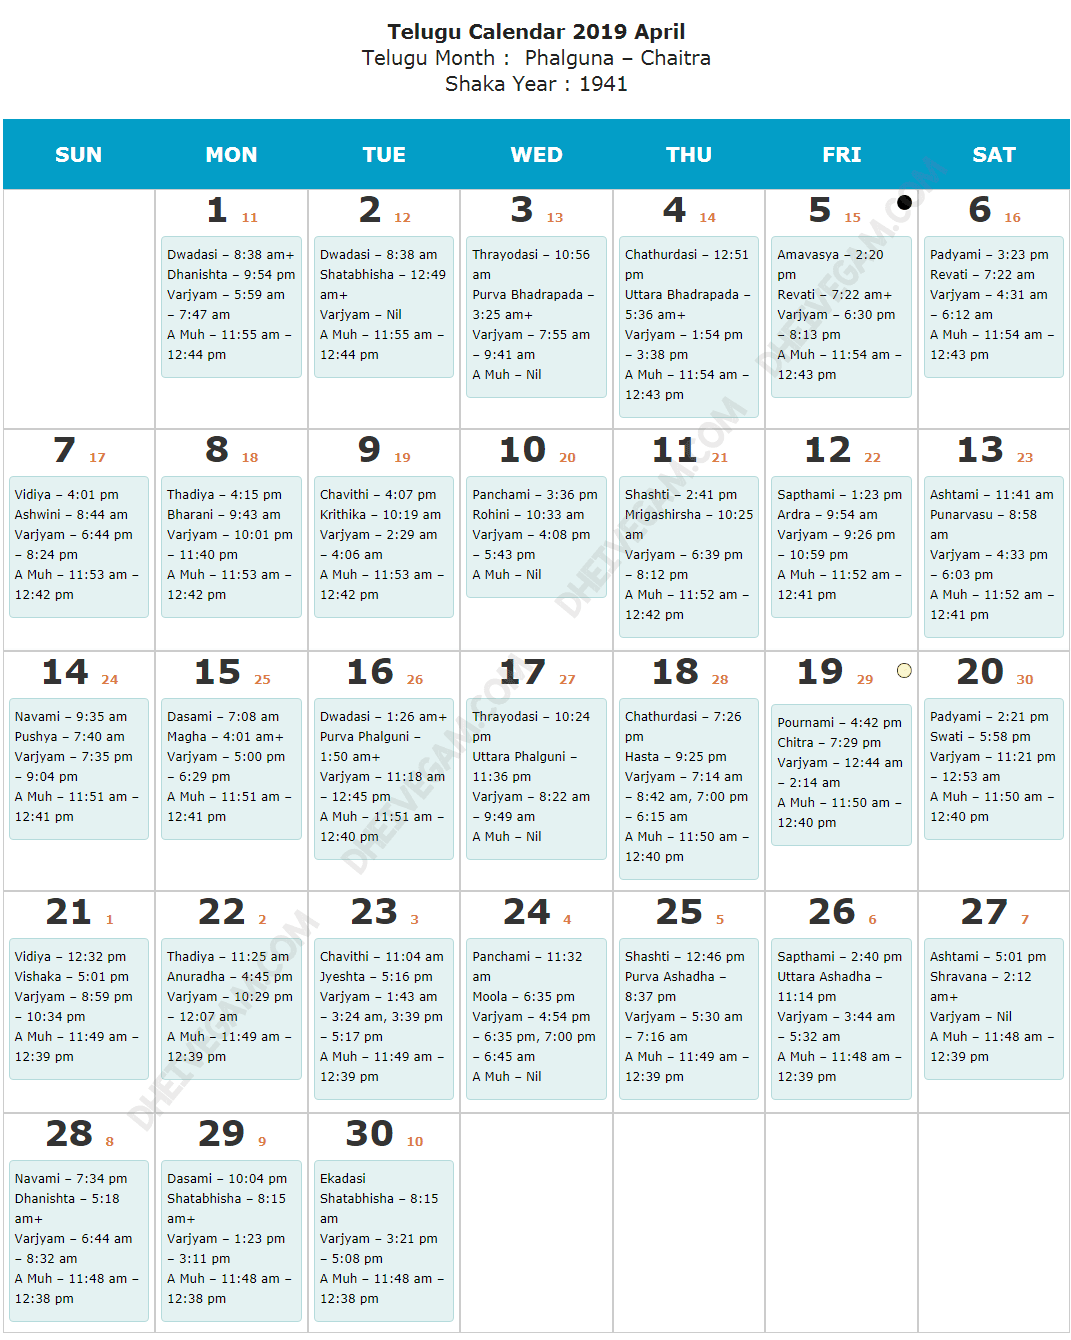 April 2019 Telugu calendar